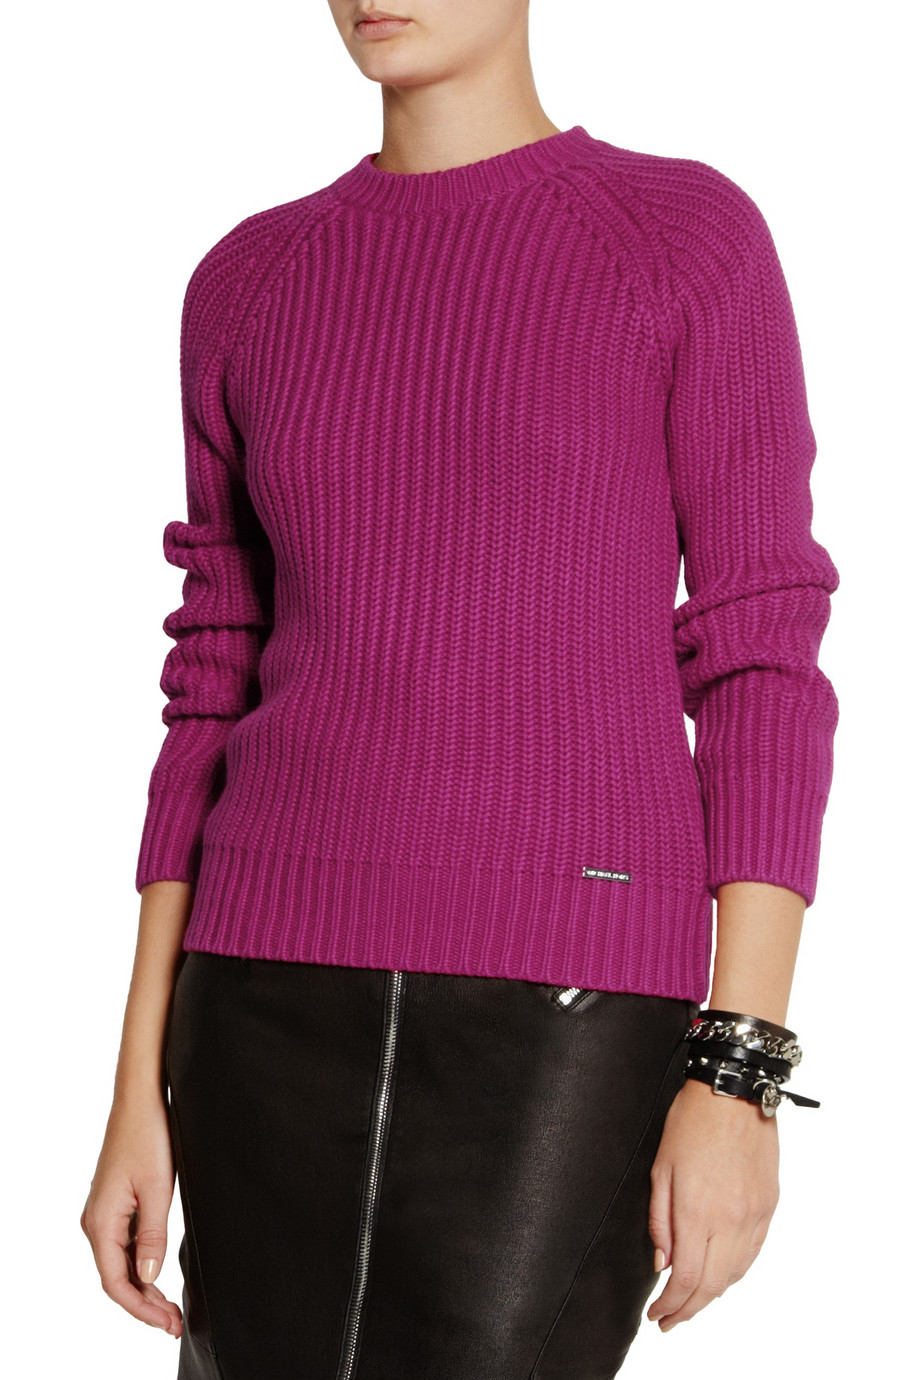 Michael michael kors Chunky-knit Cotton-blend Sweater in Purple | Lyst